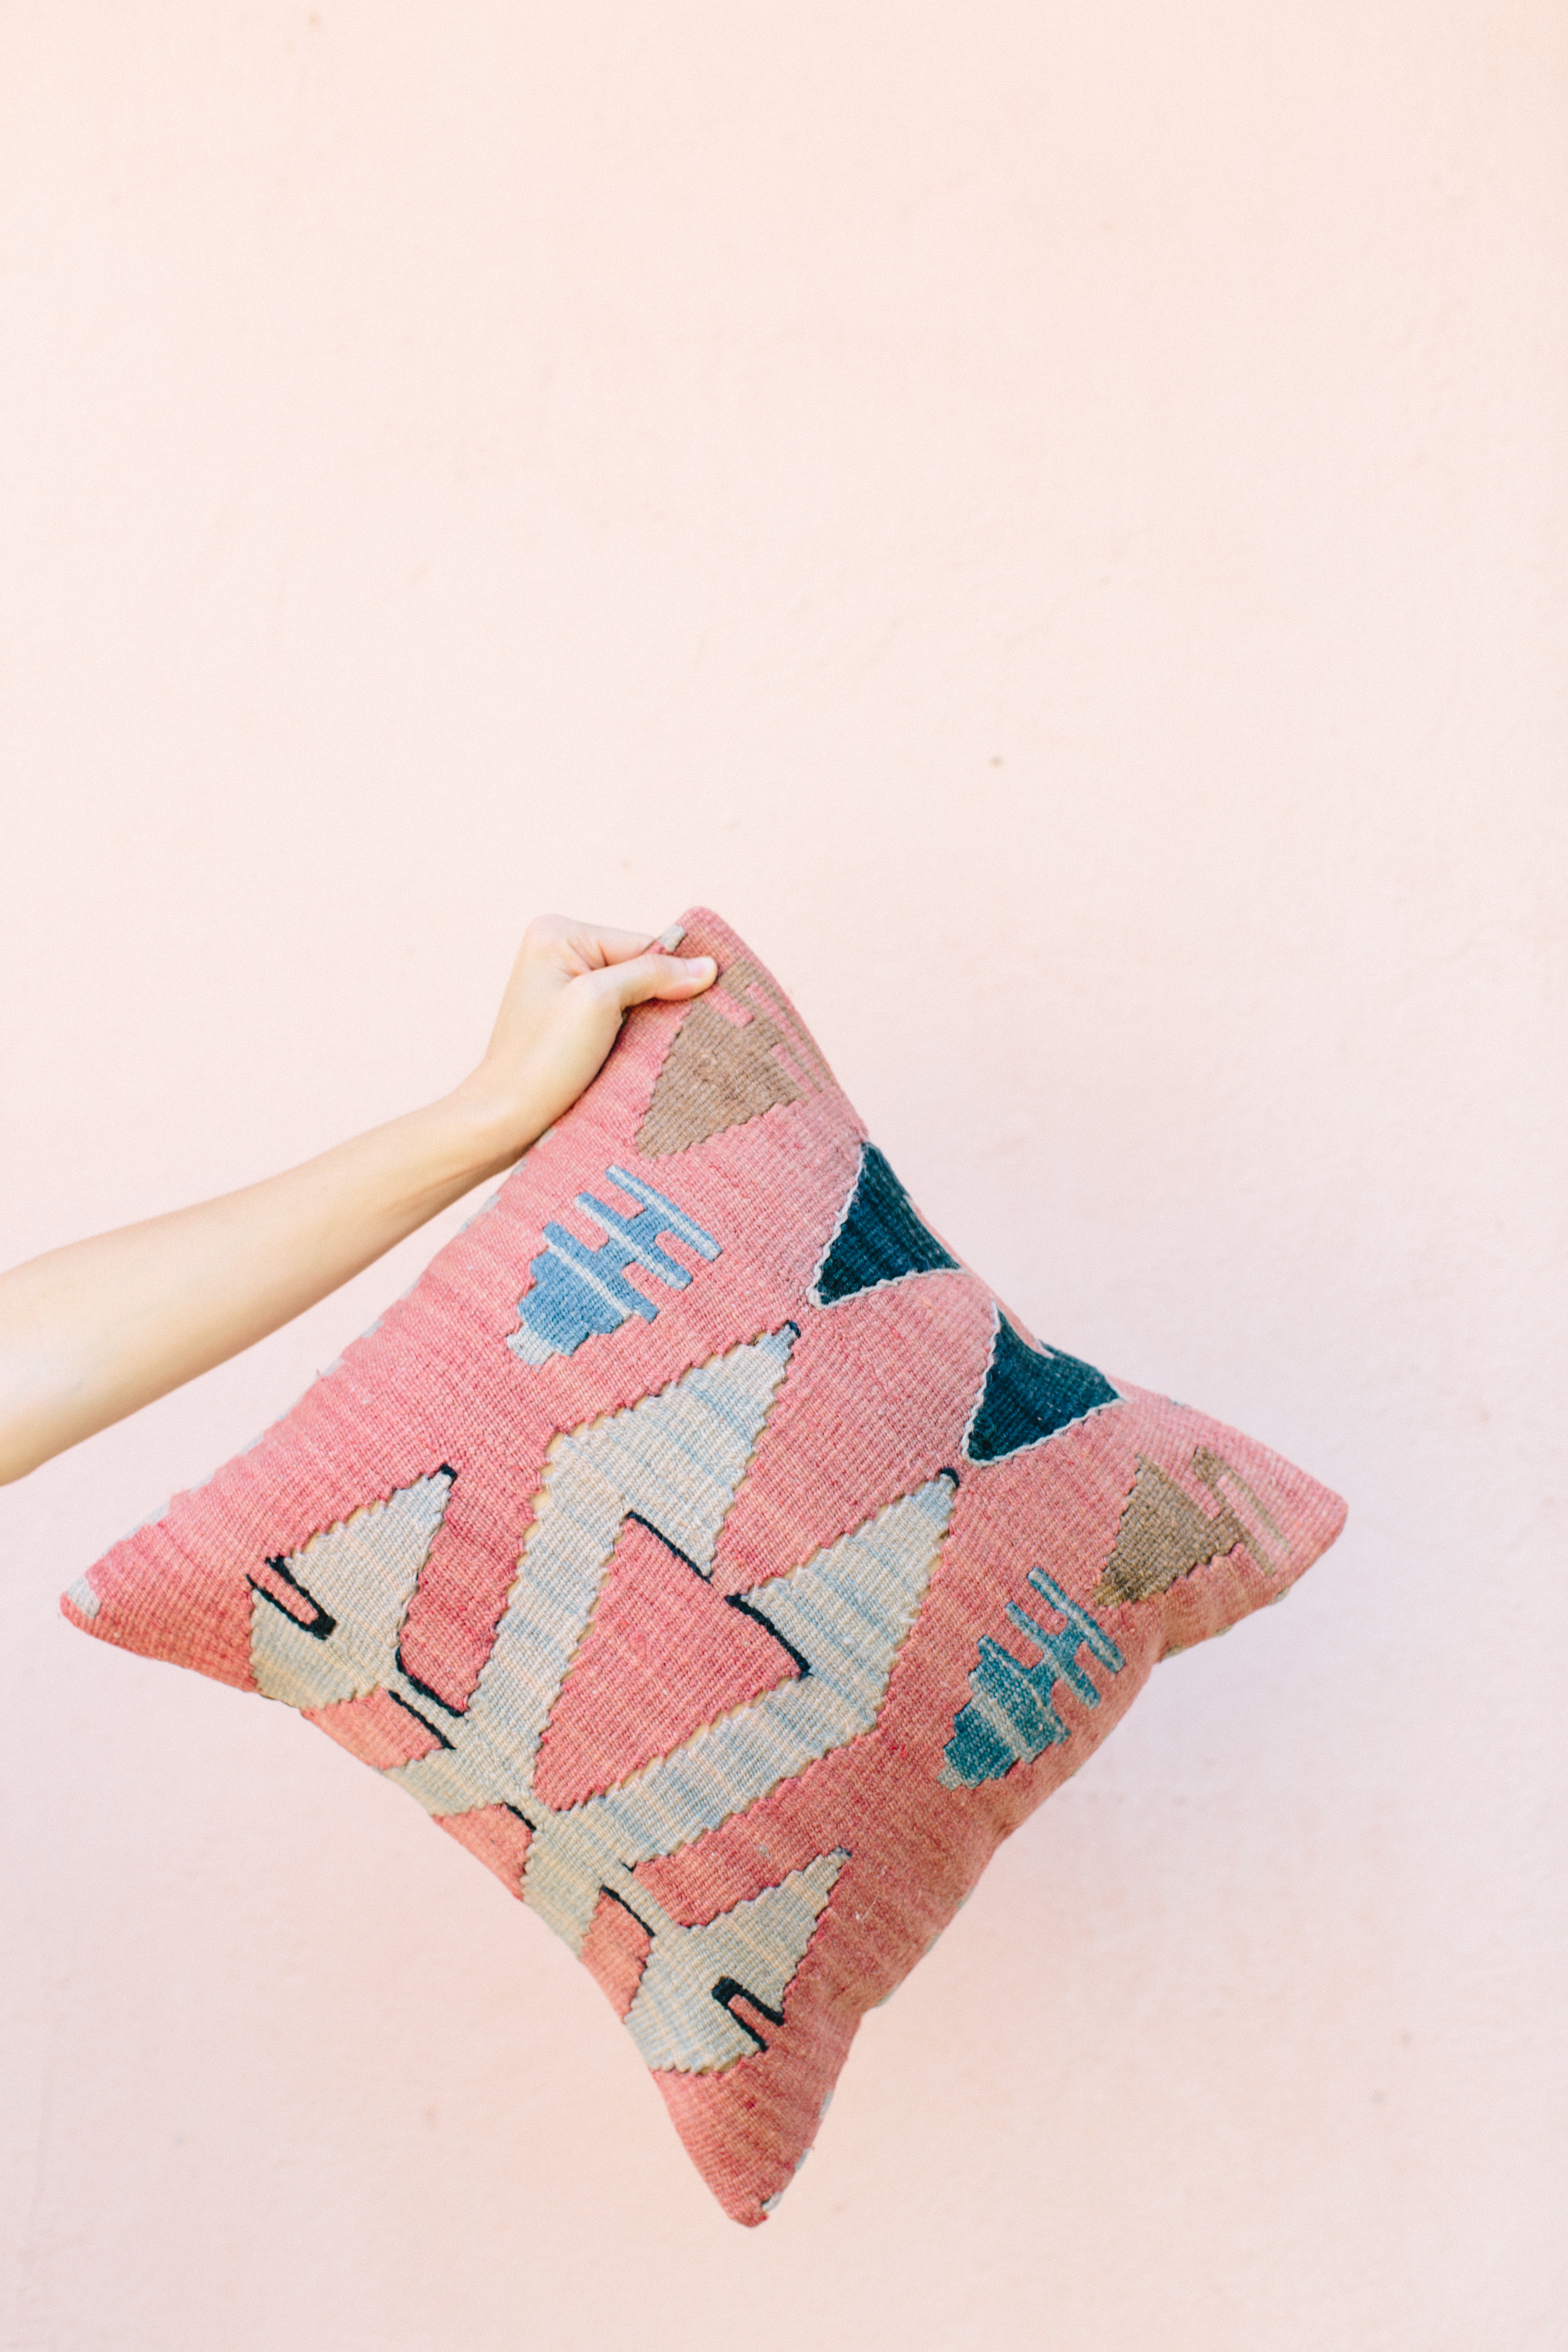 LOFT CREATIVE KILIM PILLOW-19.jpg